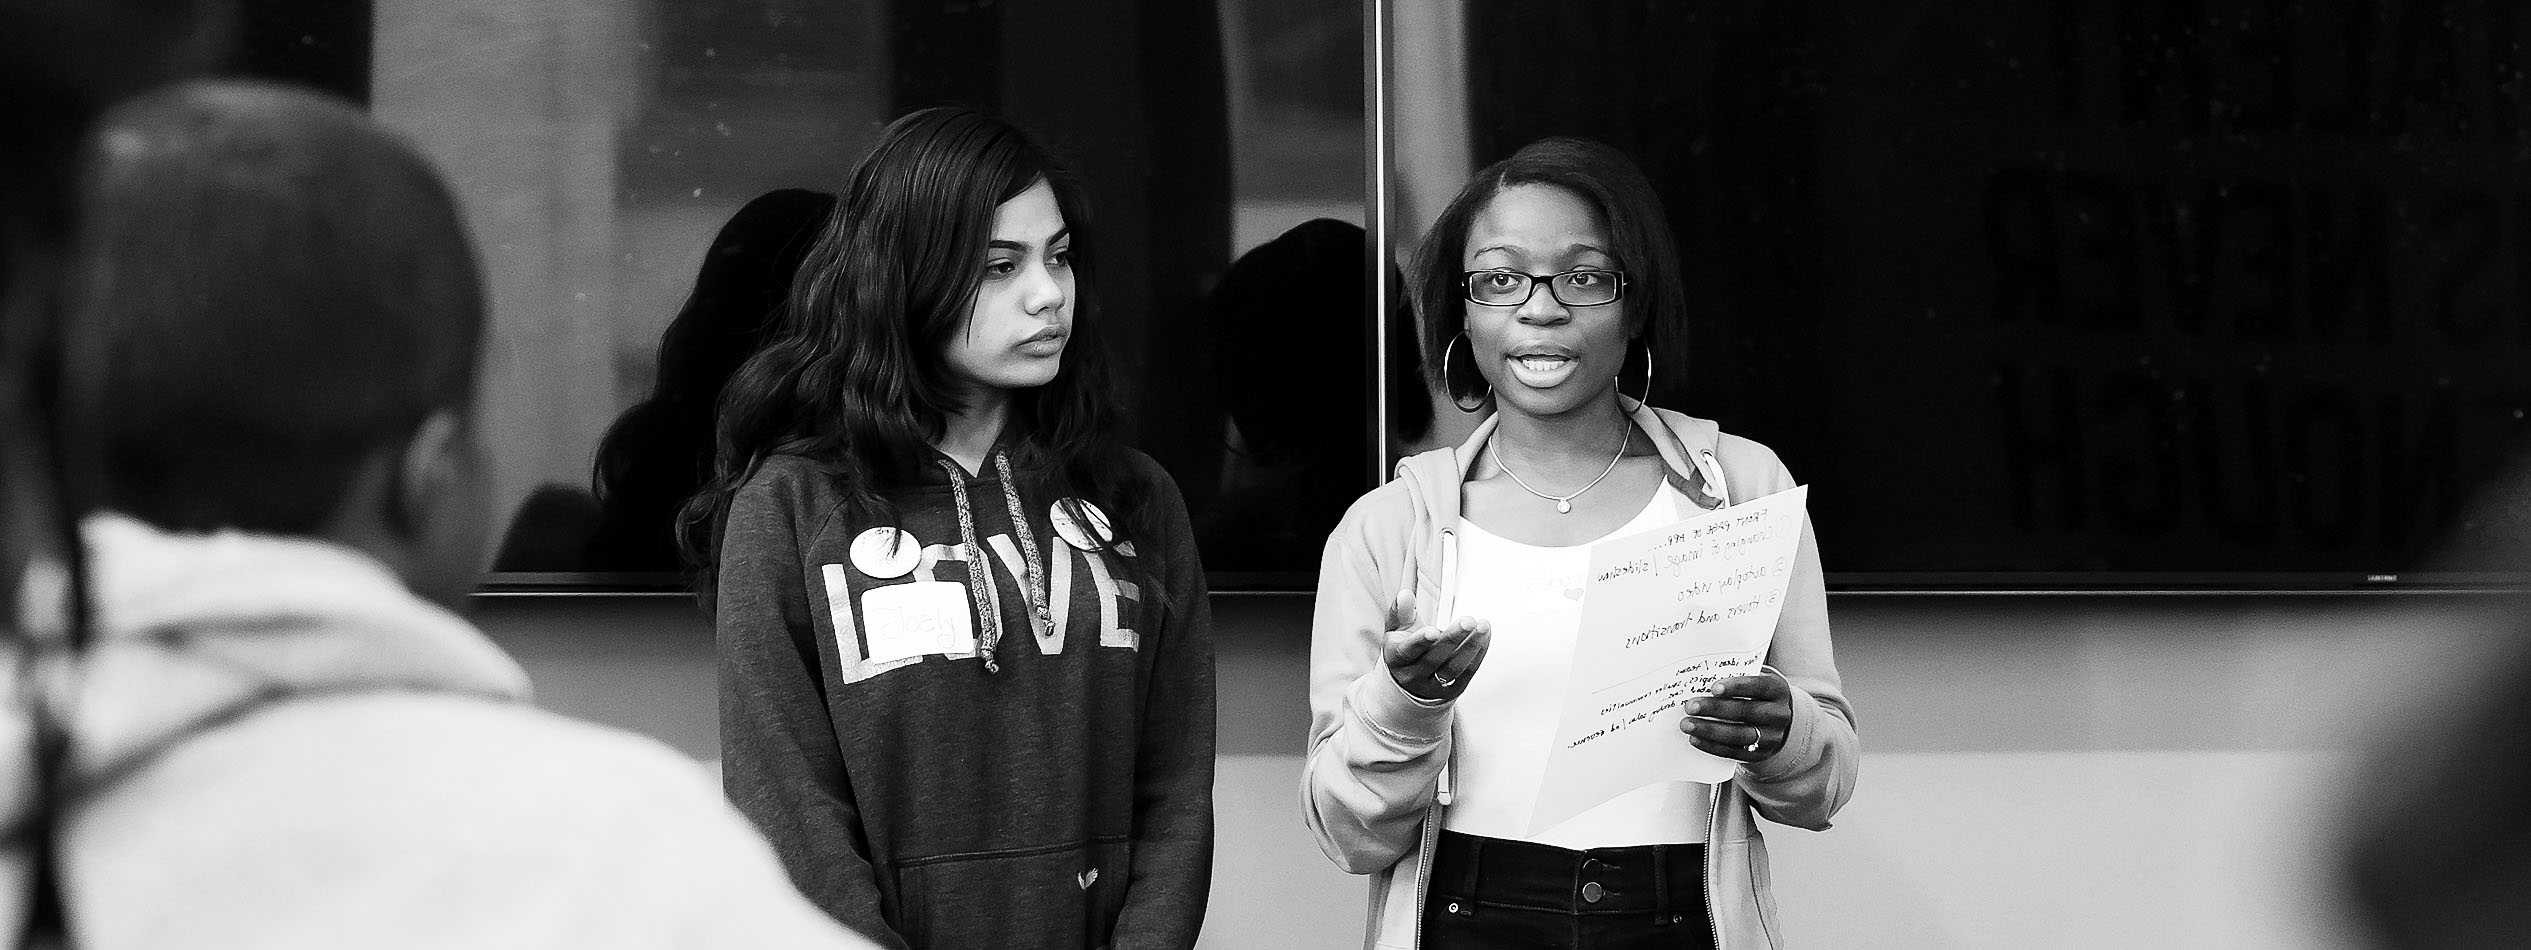 Two students of color giving a presentation